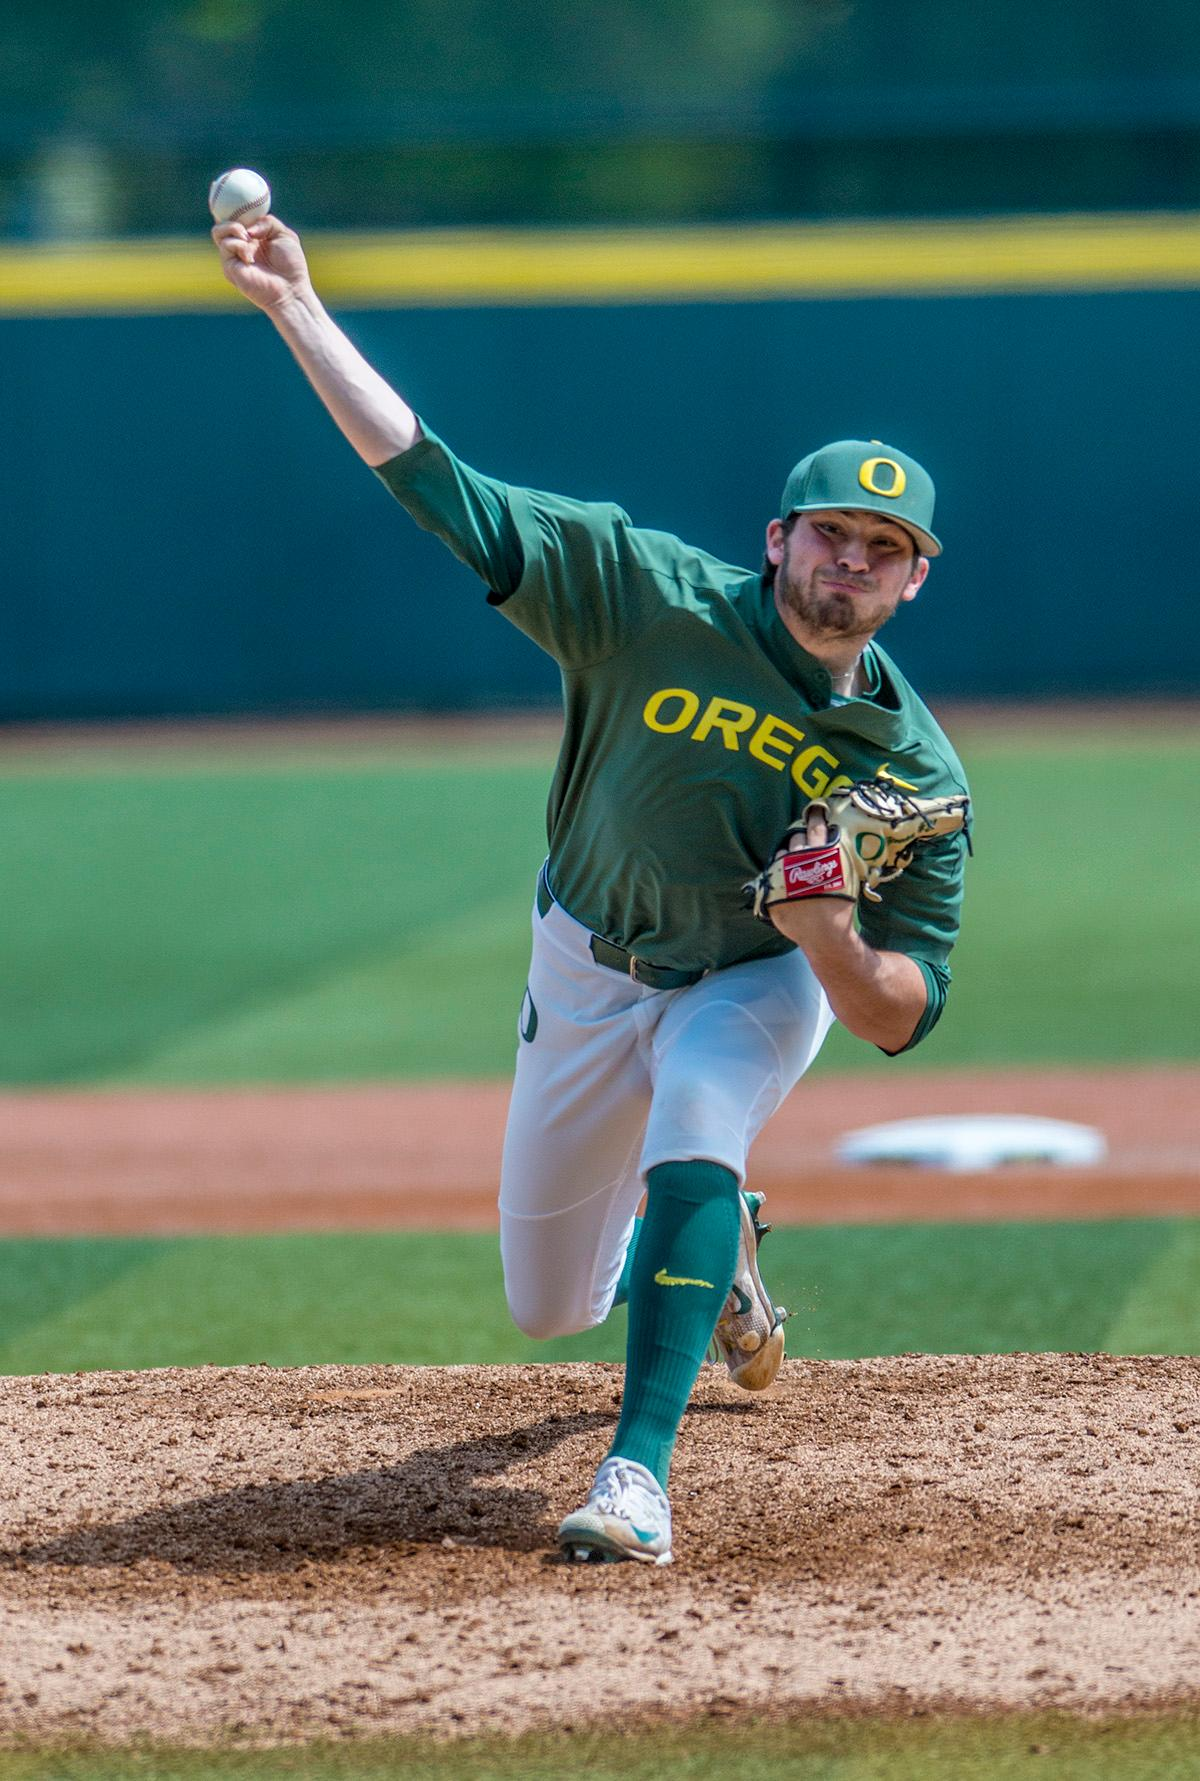 Oregon Ducks right-handed pitcher Kenyon Yovan (#21) throws from the mound. The Oregon Ducks defeated the Arizona State Sun Devils 3-2 on Sunday in the final game of the three-game series to close out with two wins and one loss. Jacob Bennett (#16) gave the Ducks their first point in the third inning. Kyle Kasser (#9) and Morgan McCullough (#1) added two more points in the fourth inning to give the Oregon Ducks enough of a lead to hold off the Sun Devils to the end of the ninth. The Oregon Ducks will play the Oregon State Beavers next in Corvallis, Ore, on May 2 at 5:30 p.m. Photo by Rhianna Gelhart, Oregon News Lab